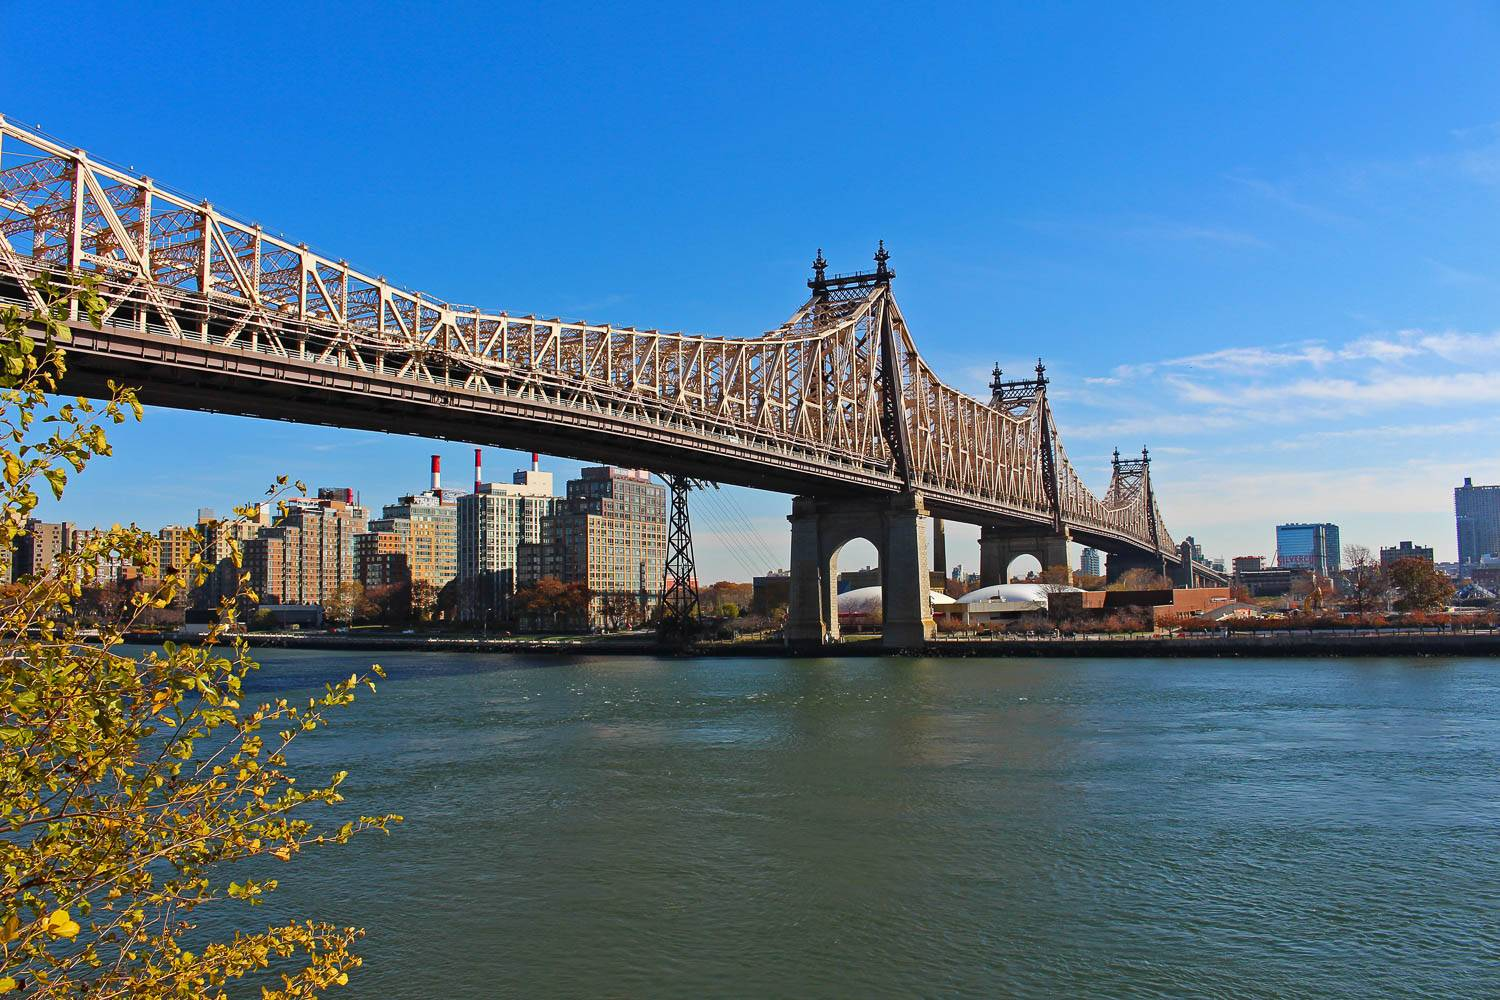 Image of the Queensboro Bridge as viewed from Manhattan.